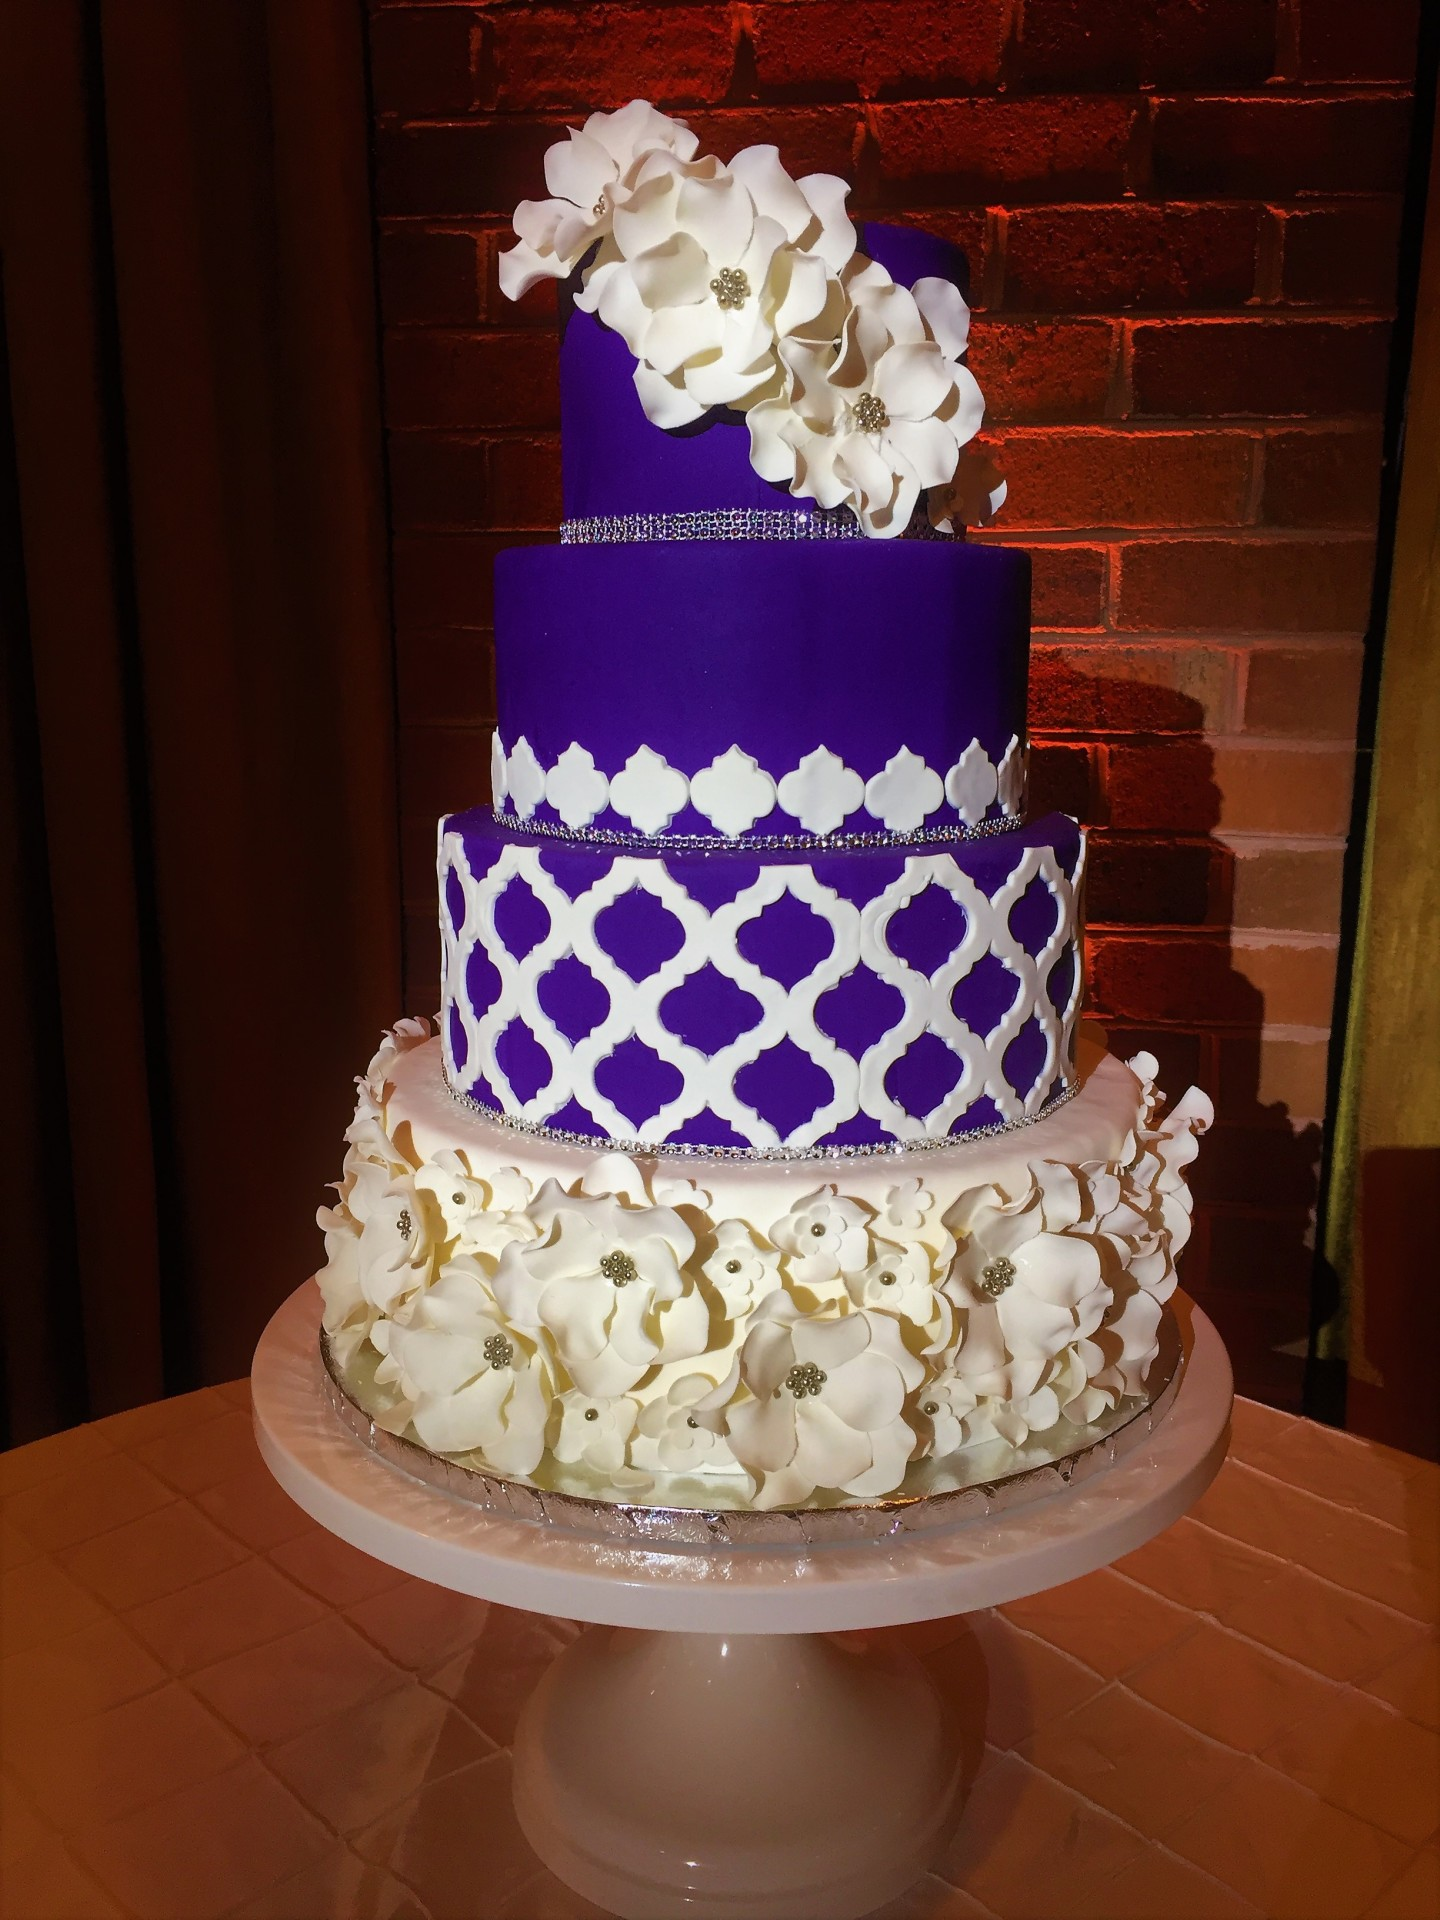 Royal purple with moroccan lattice and gumpaste fantasy flowers